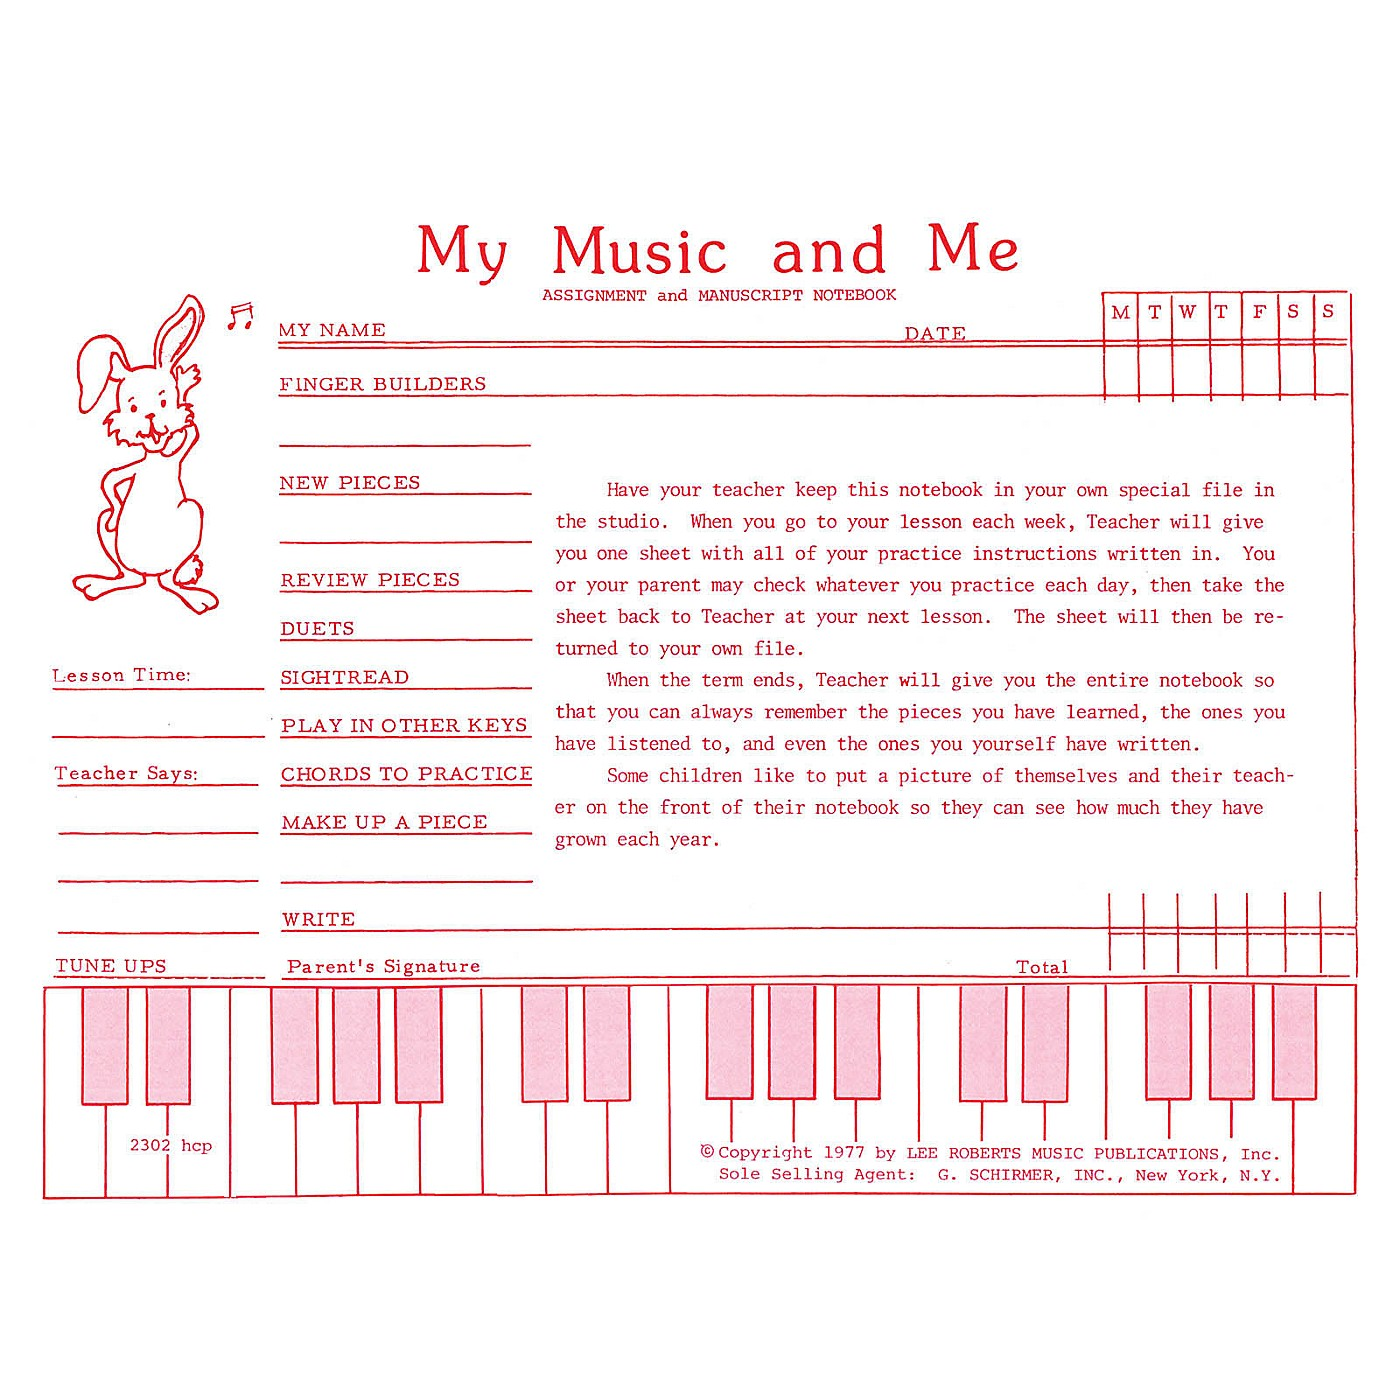 Lee Roberts Teaching Aids, My Music & Me - Primary Manuscript and Assignment Diary Pace Piano Education Series thumbnail